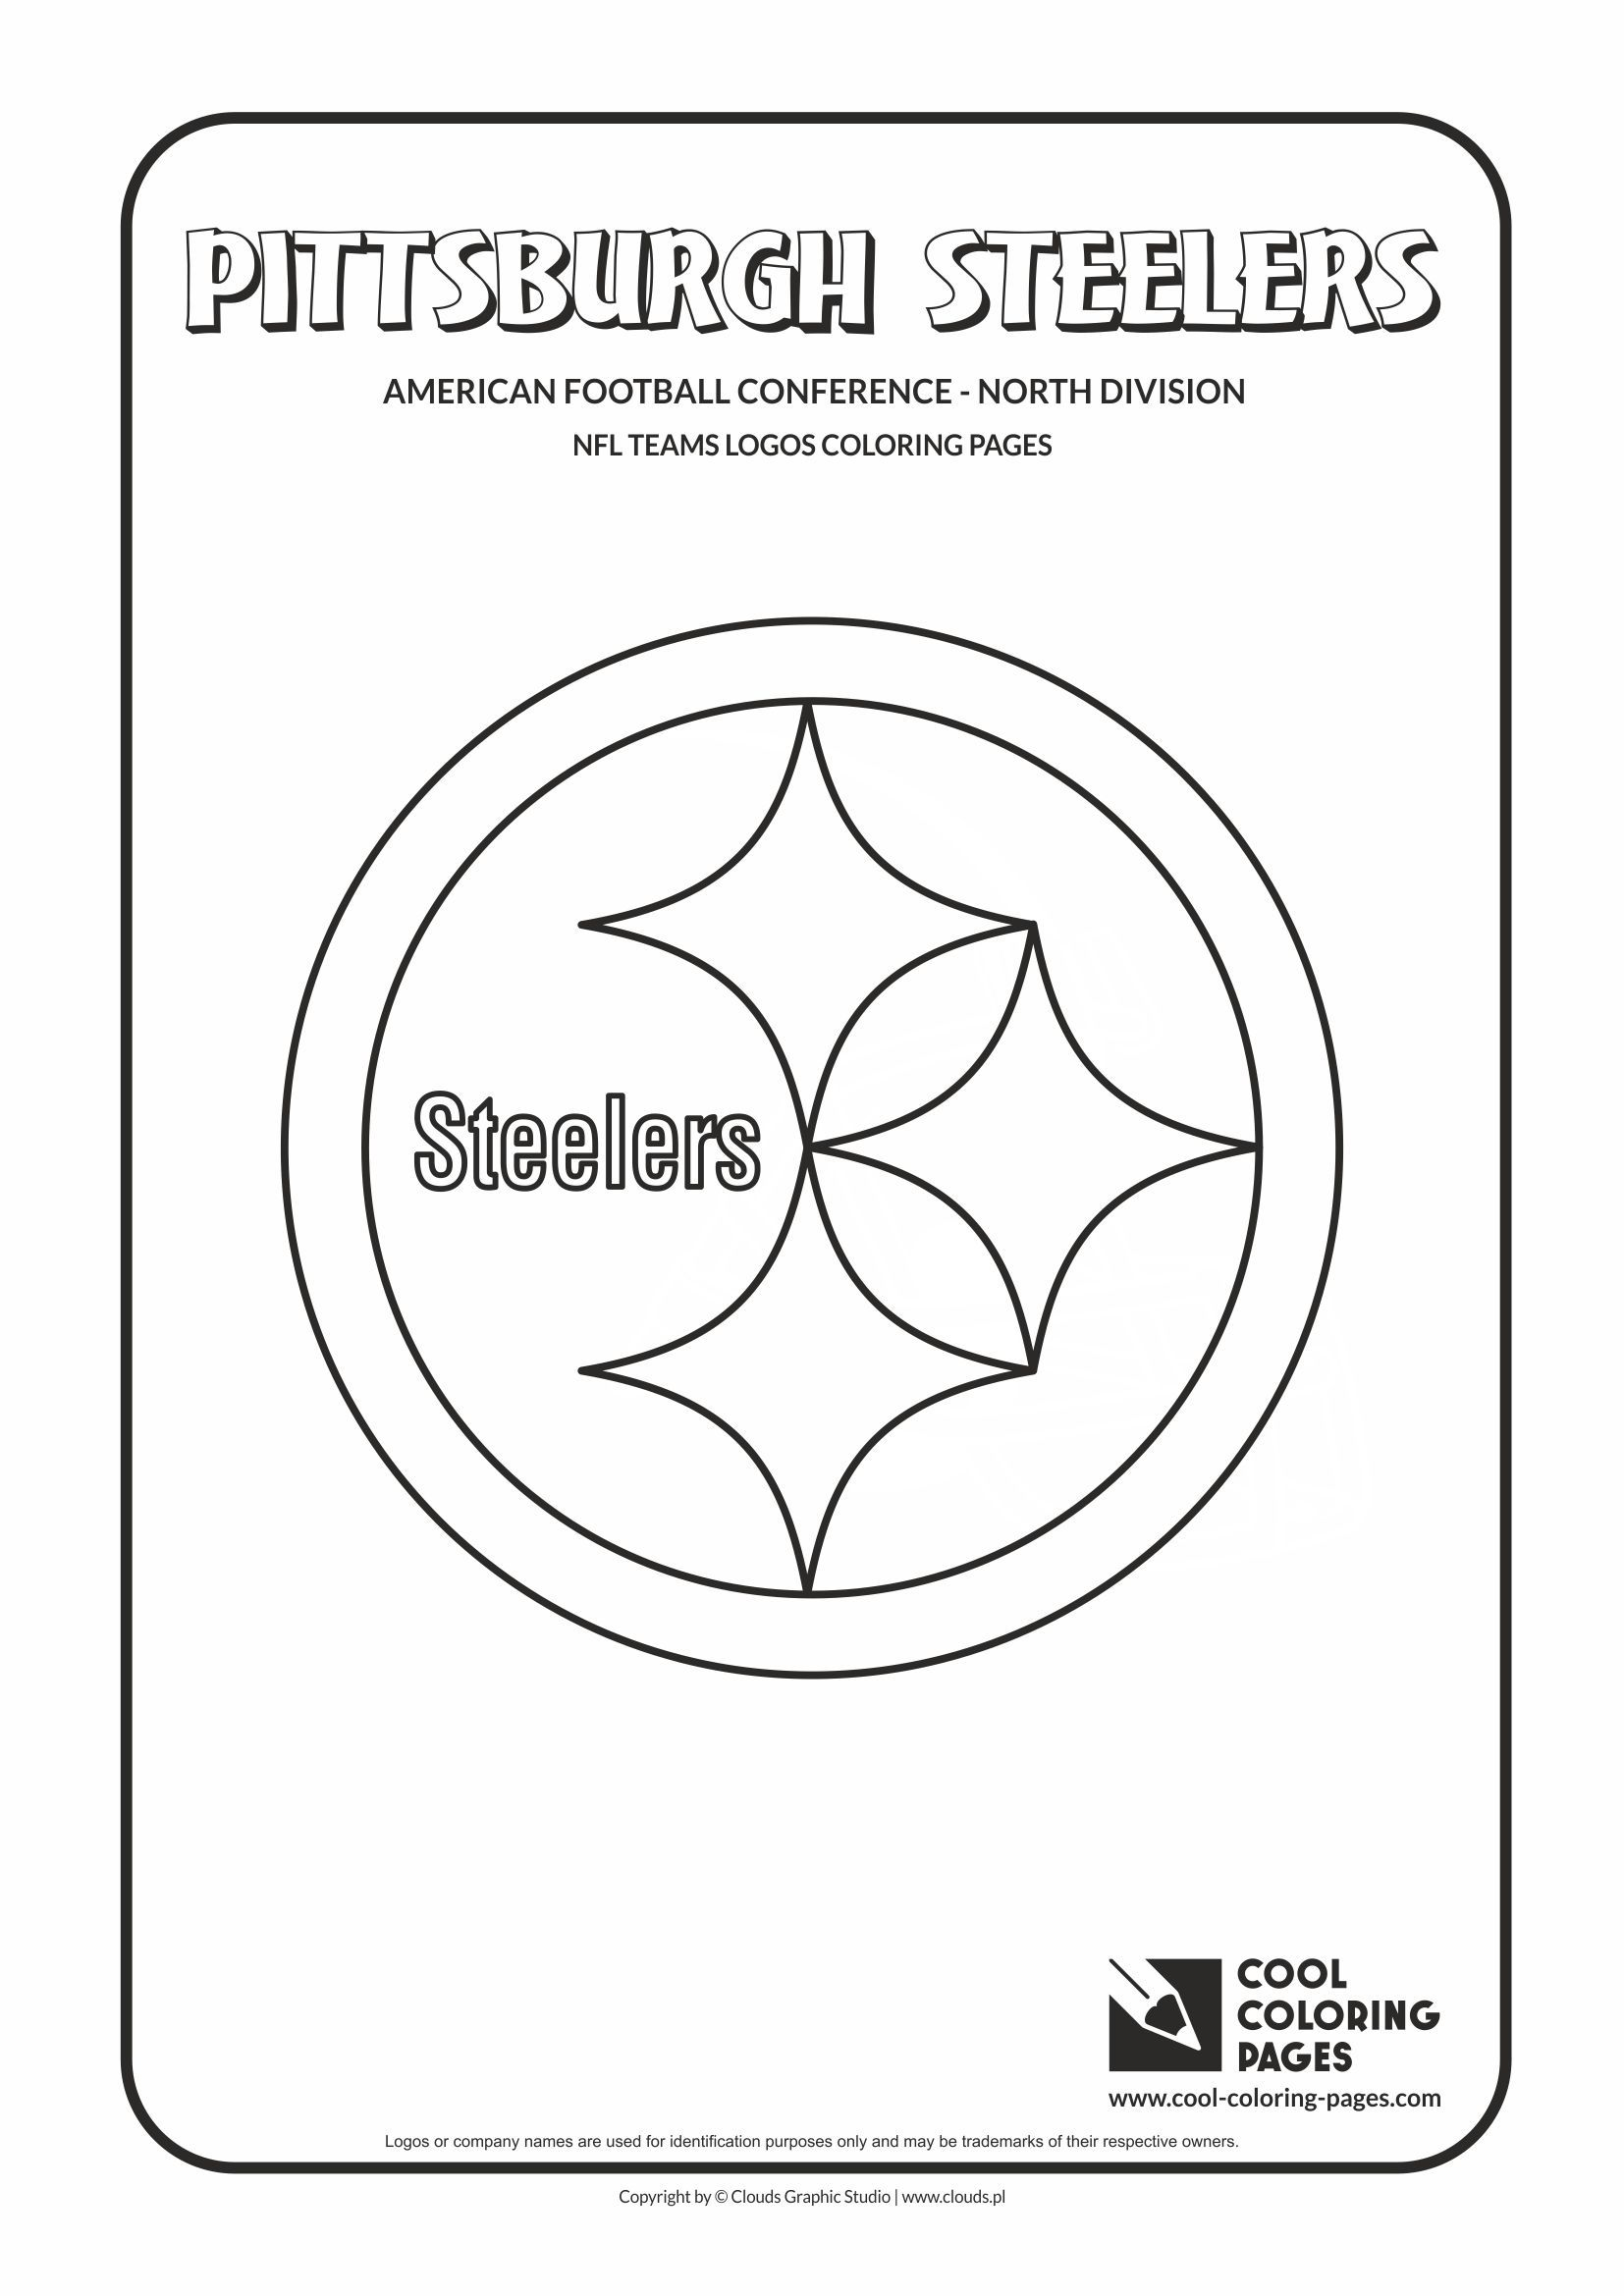 Cool Coloring Pages Nfl American Football Clubs Logos American